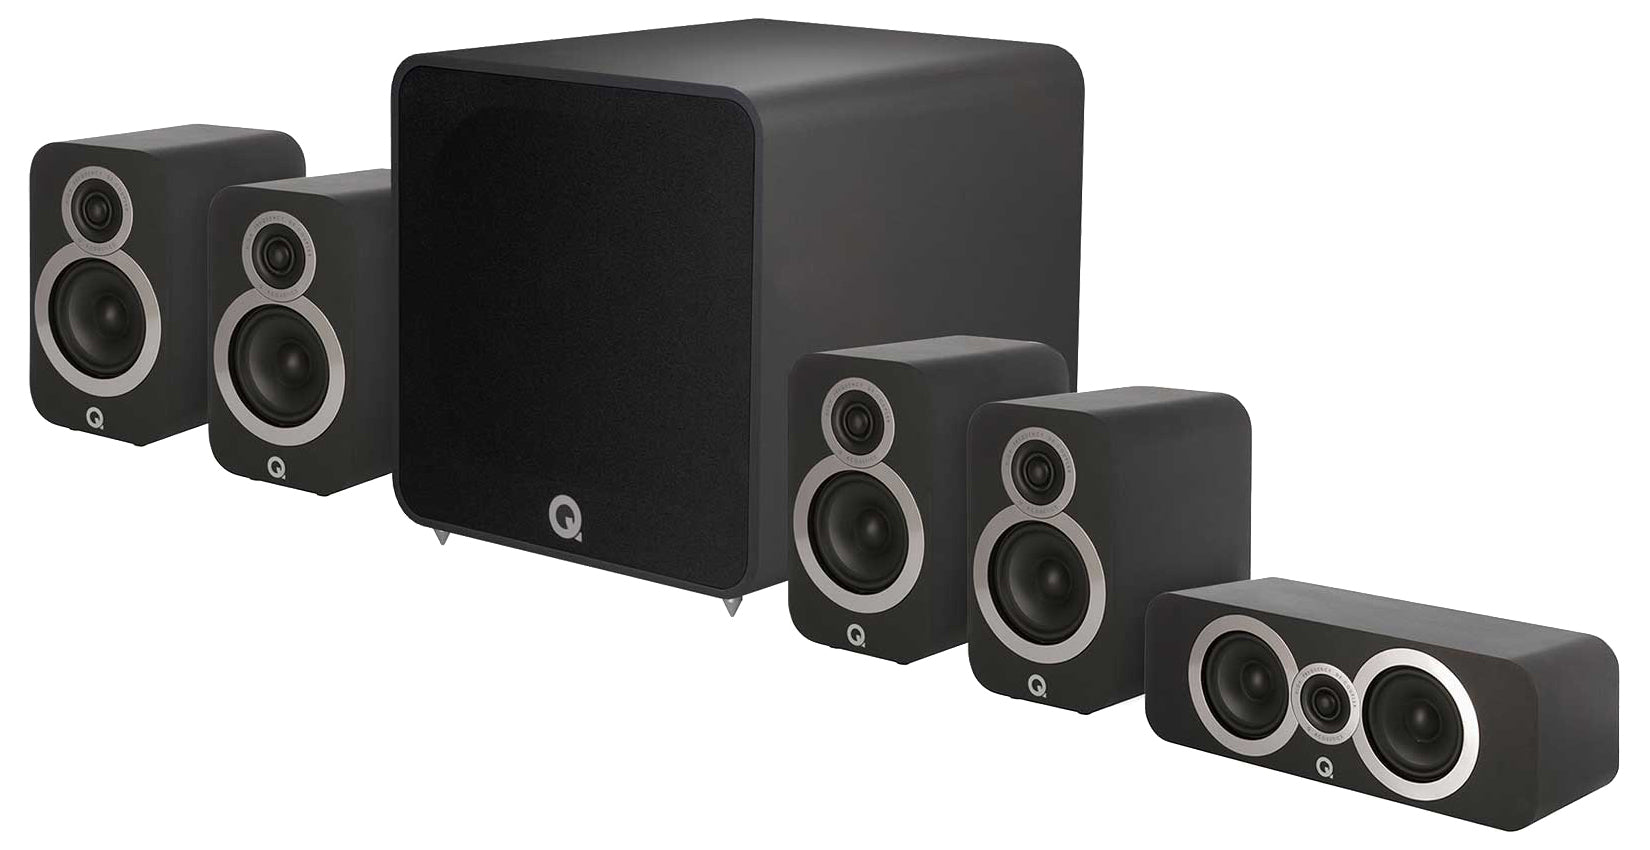 3010i 5.1 Plus Home Theater System